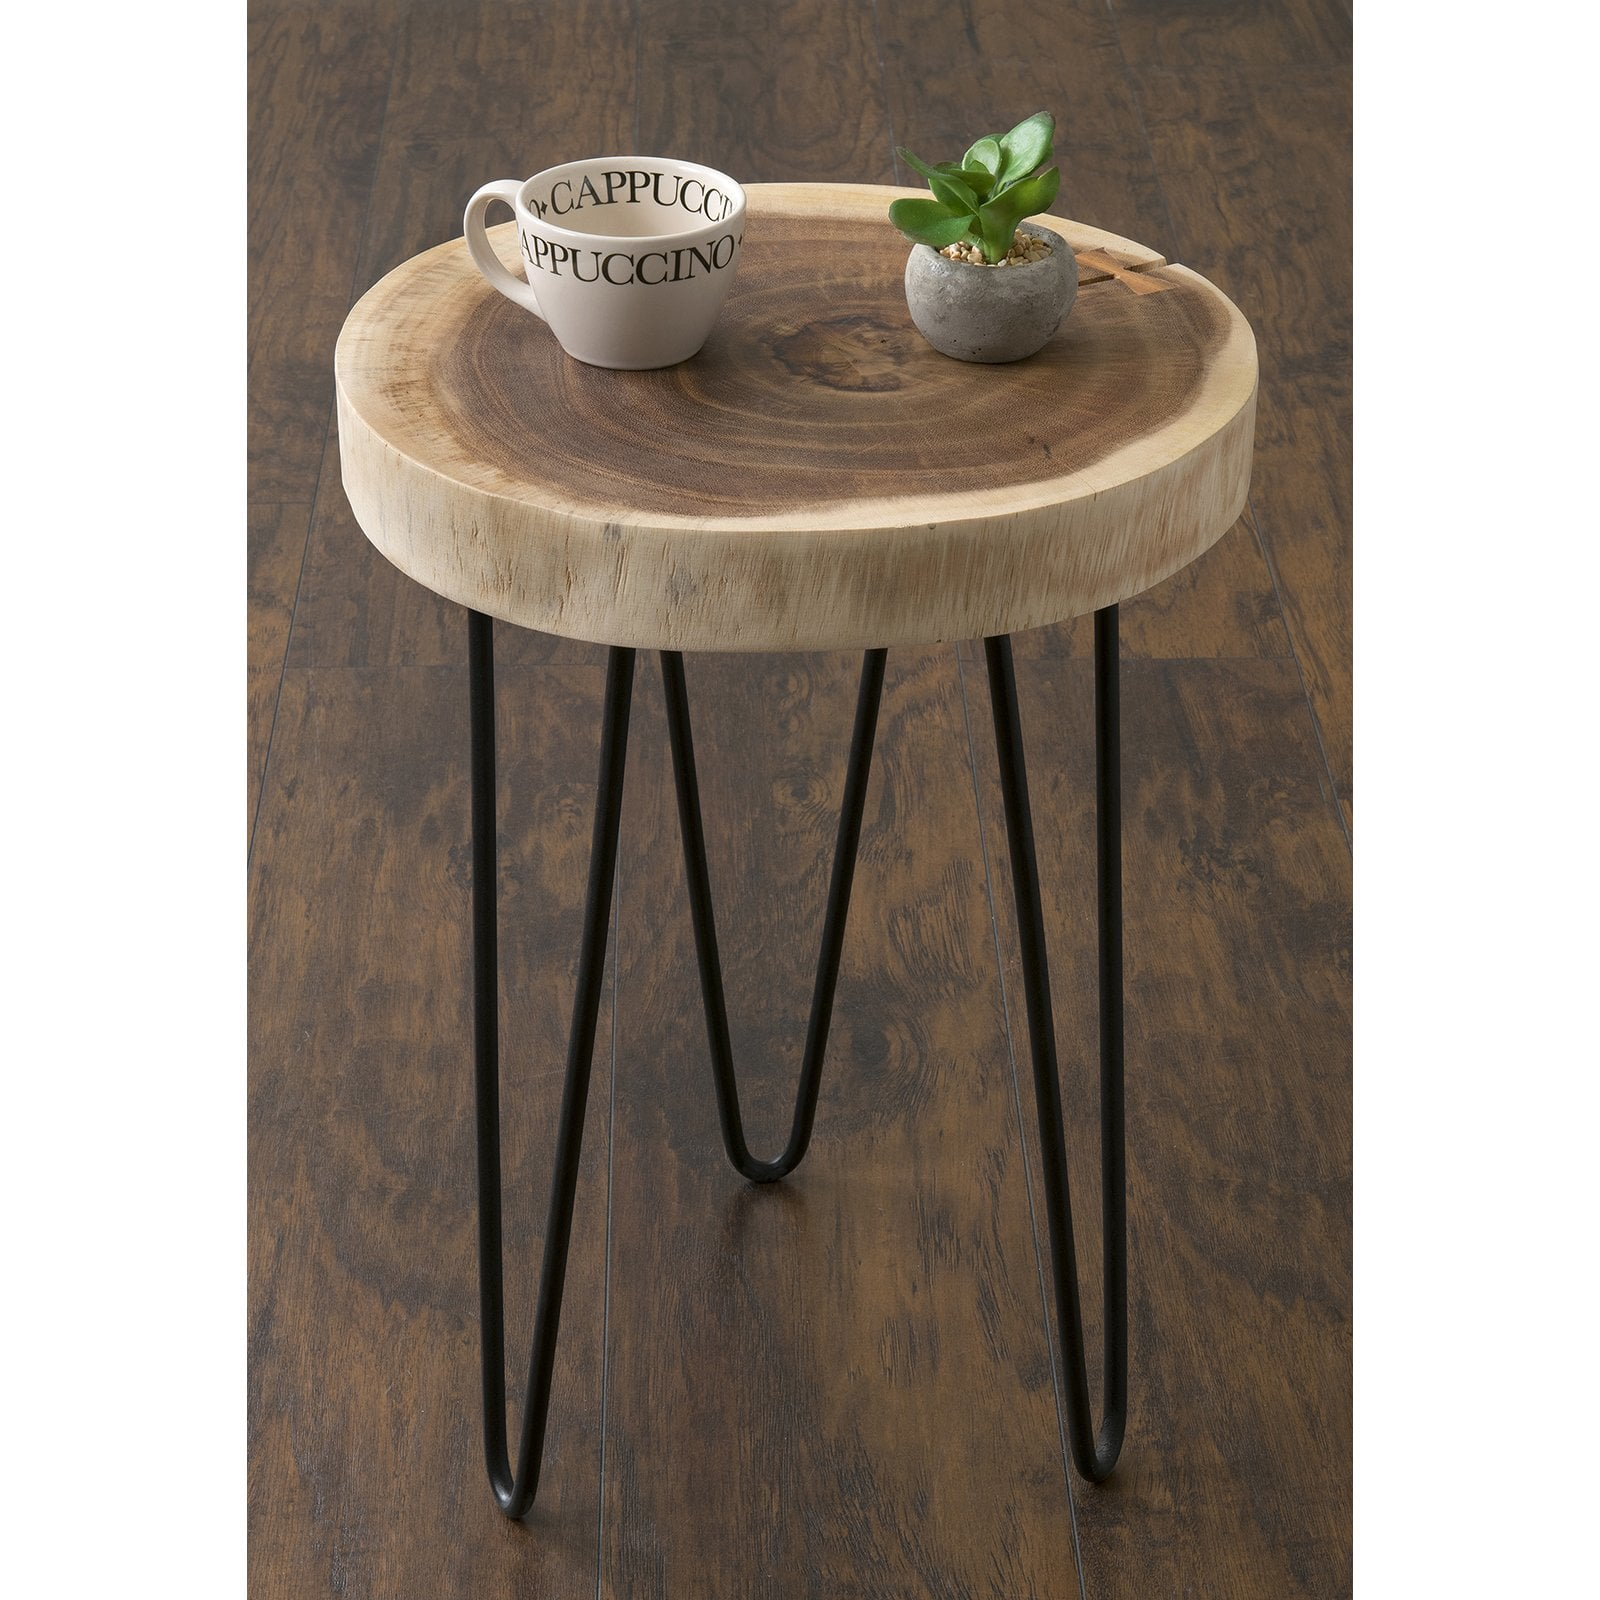 carbon loft julia brown teakwood round accent table east mains laredo teak wood free shipping today metal bar black bedside hammered copper side modern cabinet contemporary